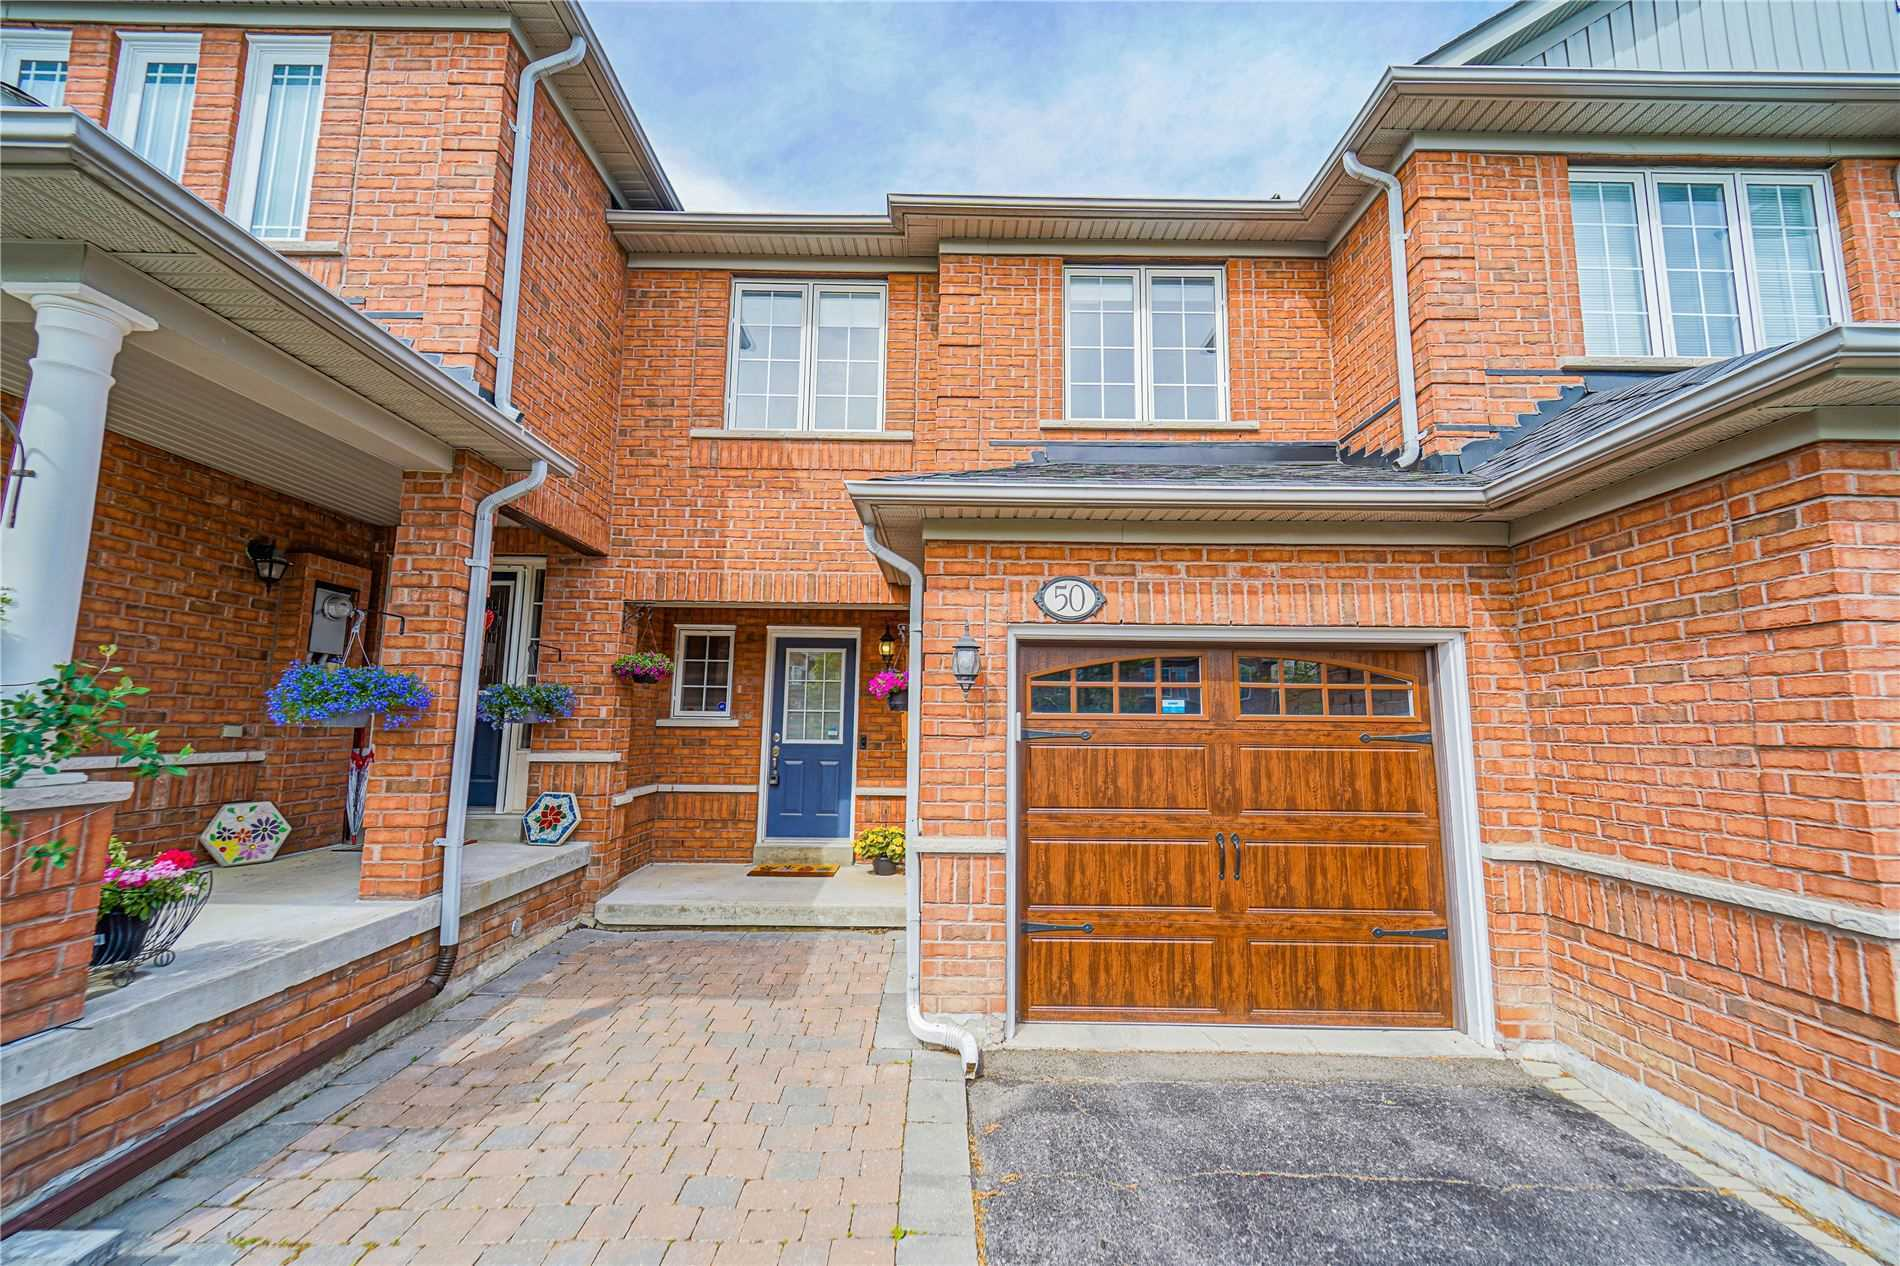 pictures of house for sale MLS: N5251136 located at 50 Millcliff Circ, Aurora L4G7N7